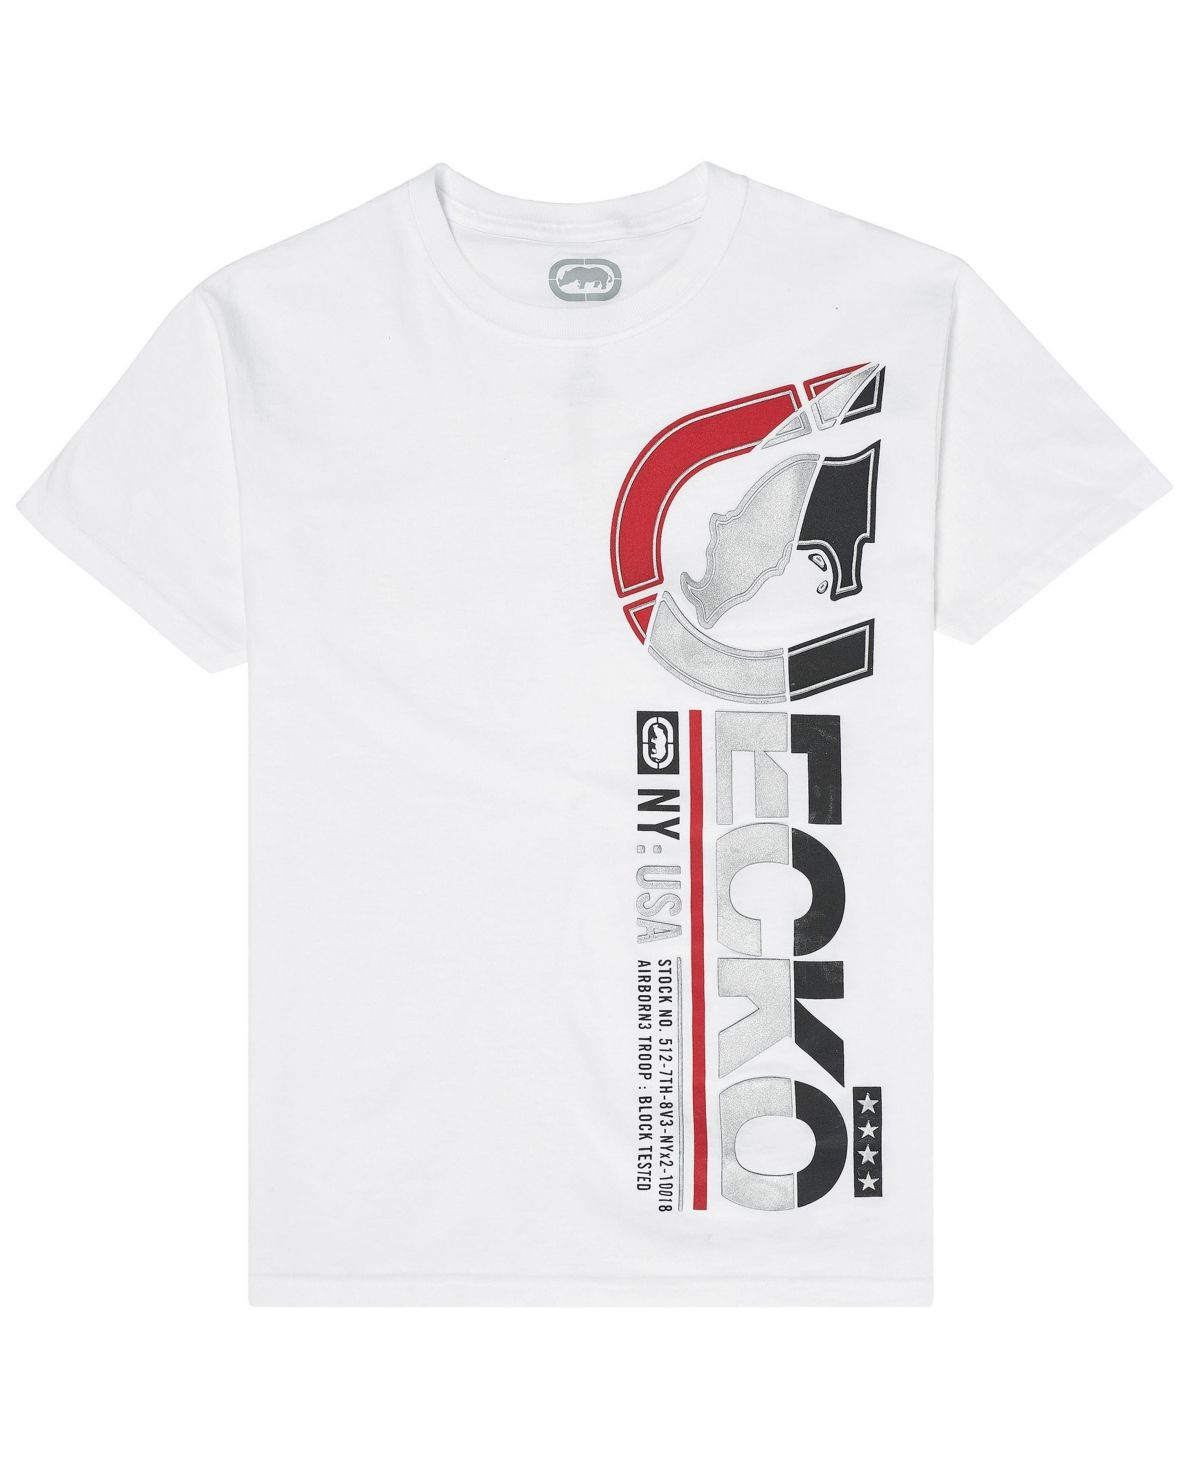 Mens Puff Paint Lettering Graphic T-Shirt Ecko Unltd